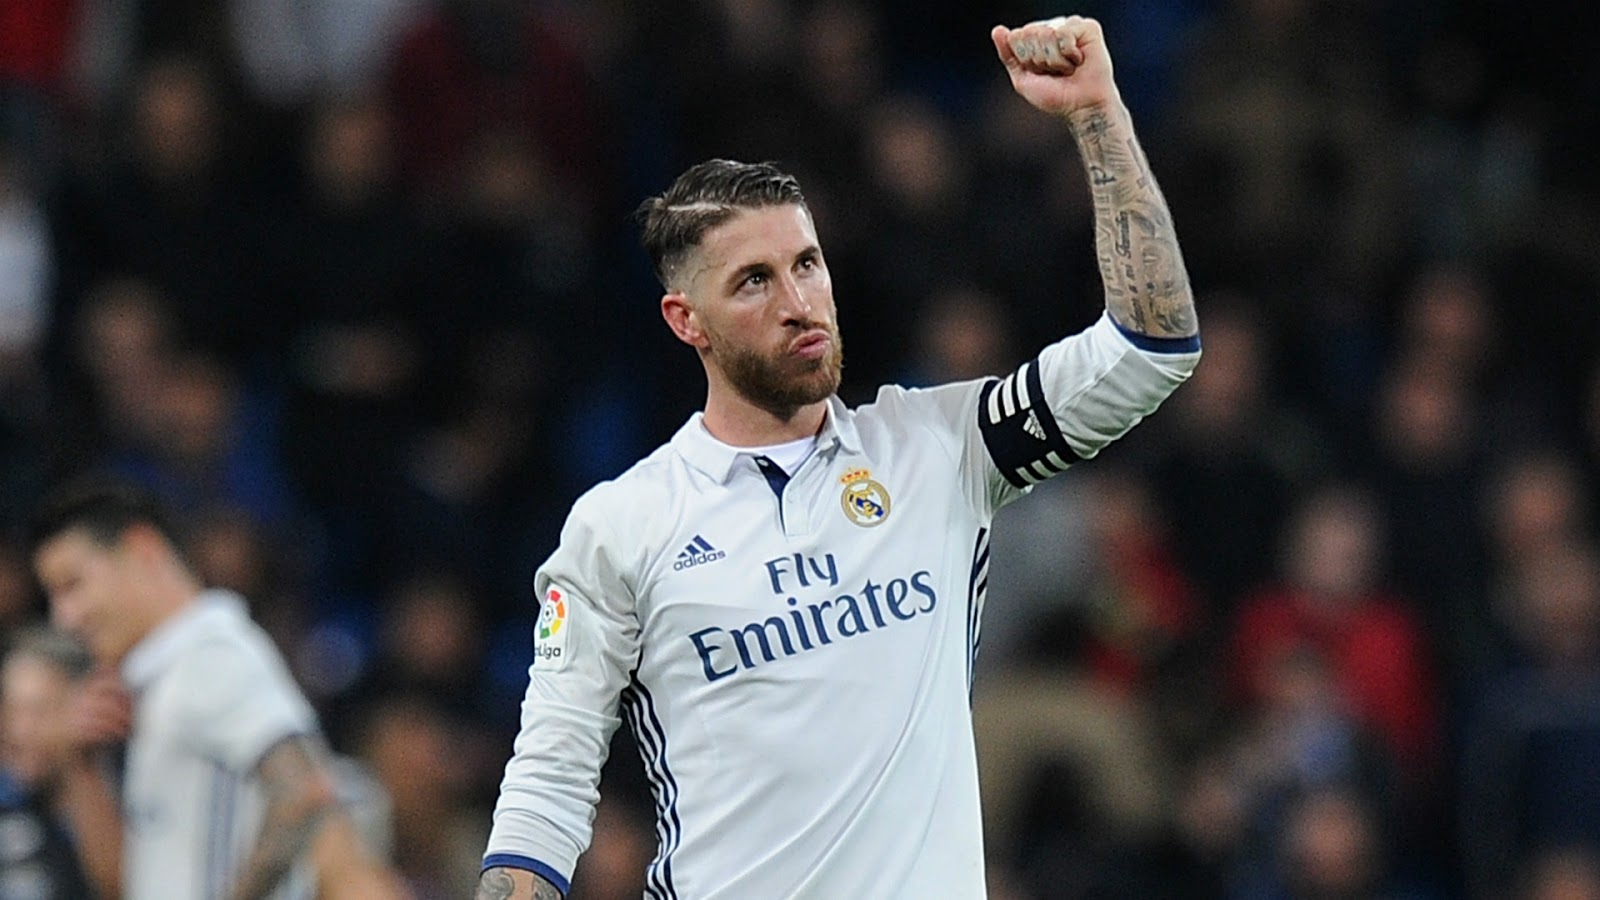 Sergio Ramos (Real Madrid)